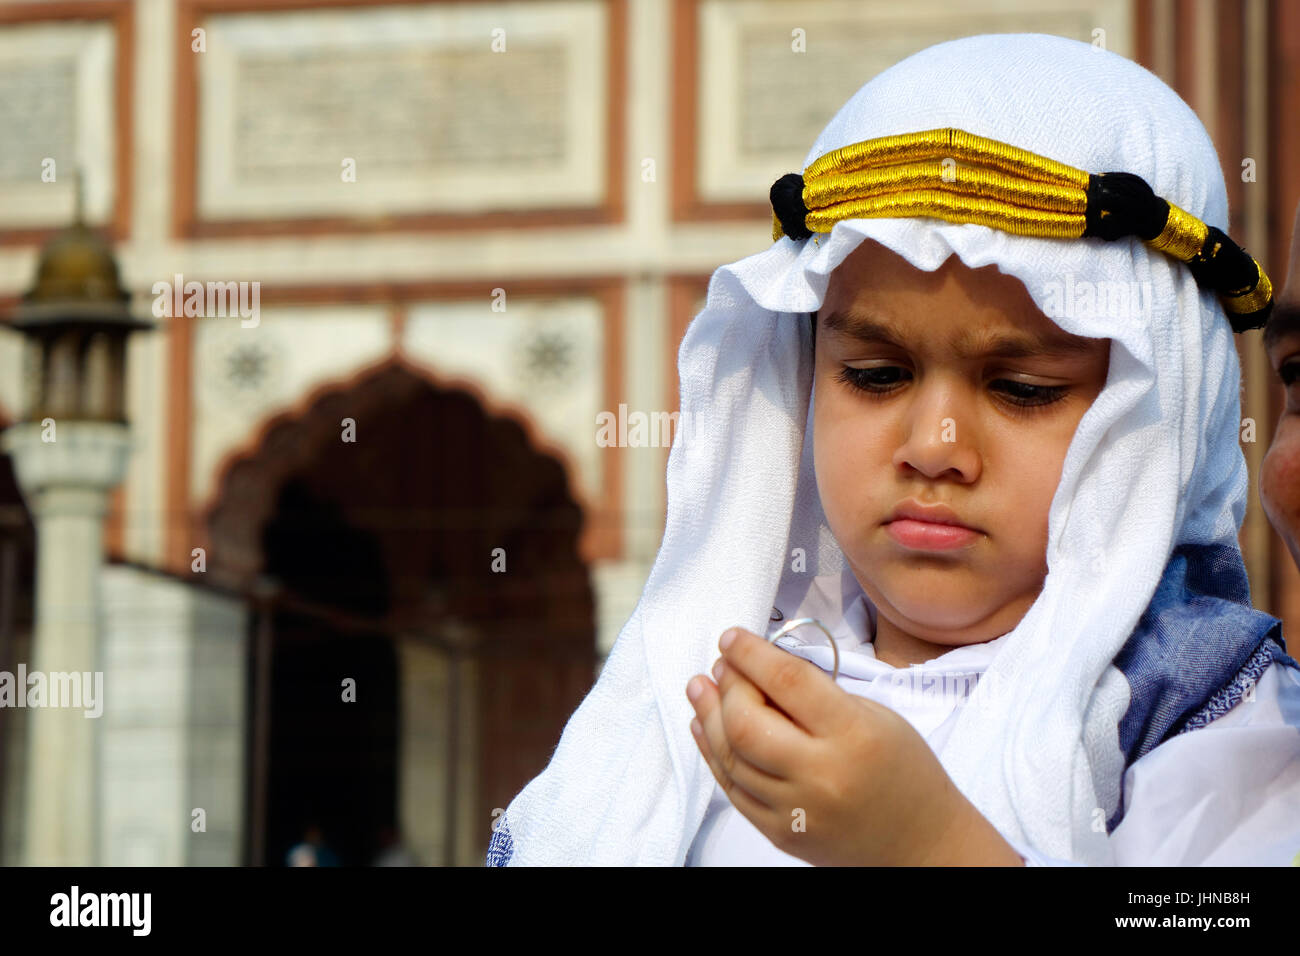 A adorable muslim child  dressed well in arabian sheik costume or outfit and enjoying on occasion of Eid Al Fitr - Stock Image